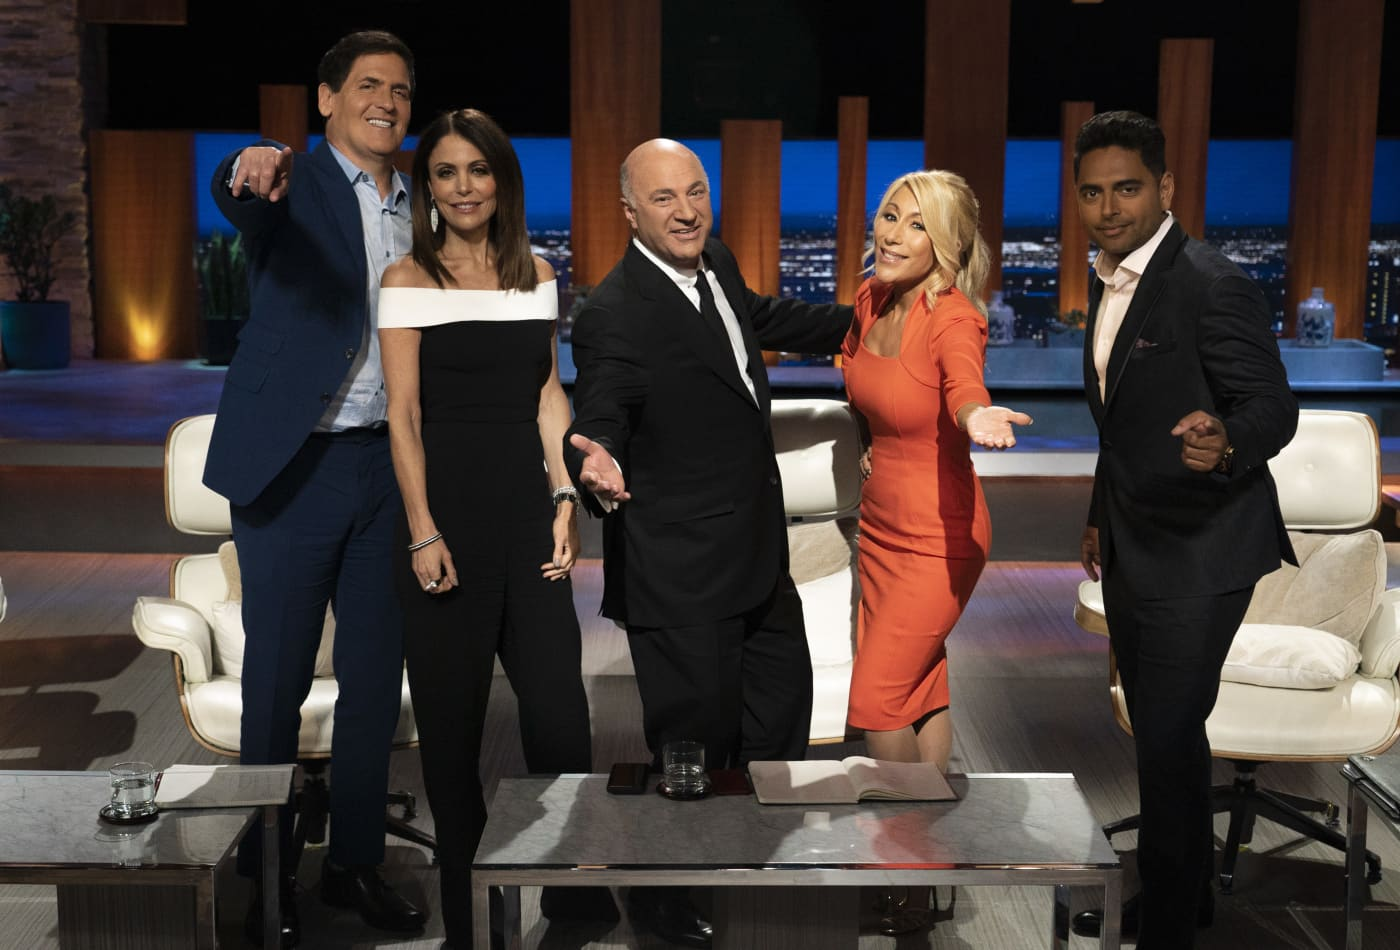 64391dfdea 'Shark Tank' guest judge Bethenny Frankel reveals behind-the-scenes secrets  of the show